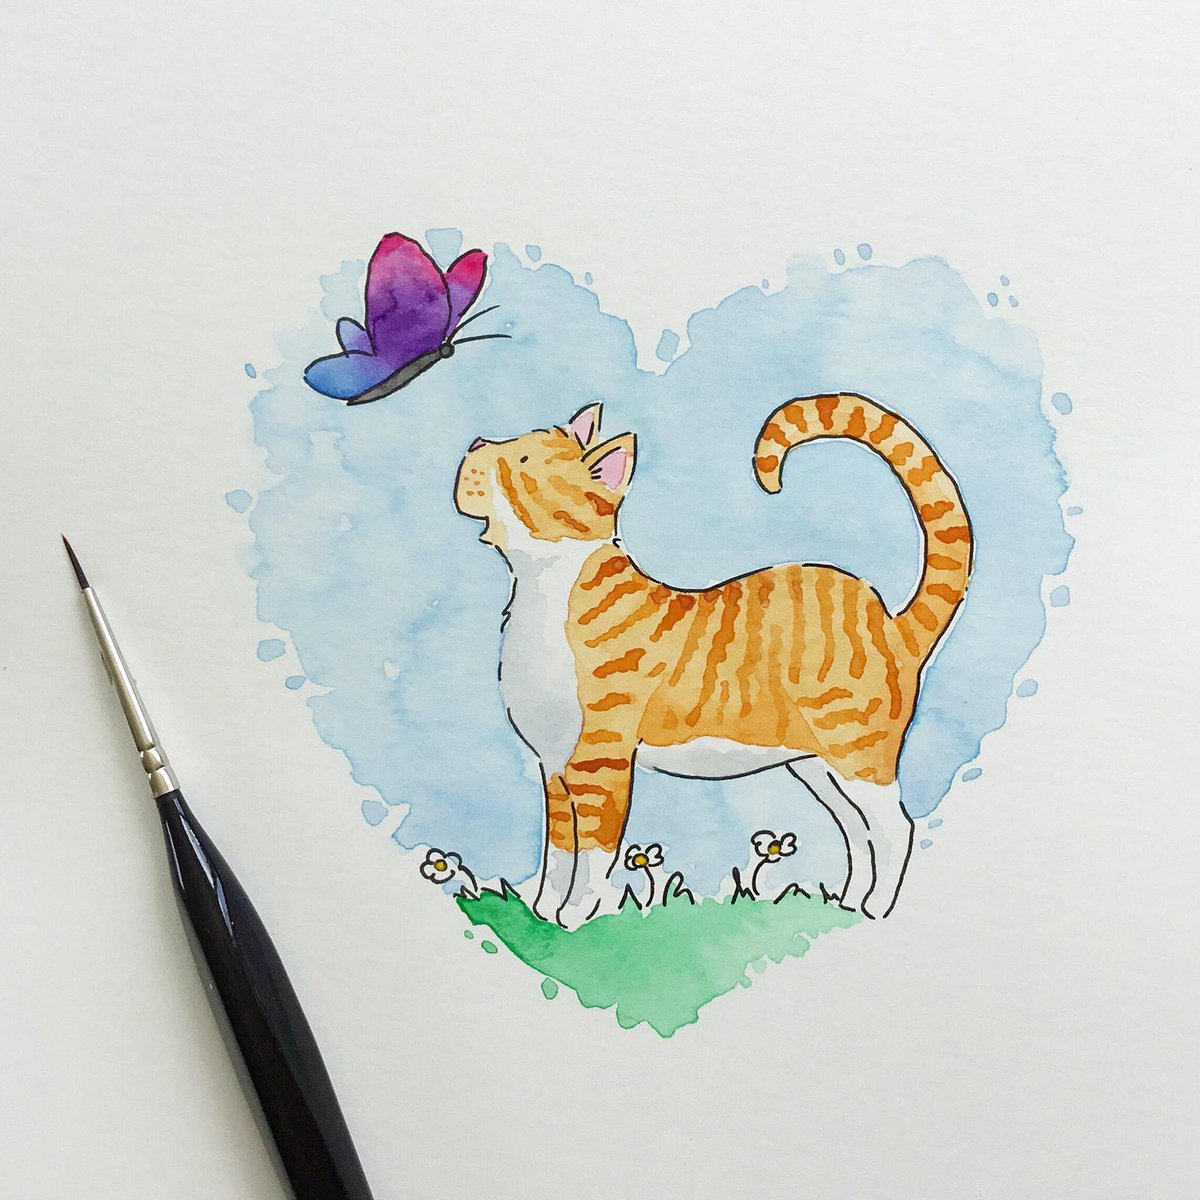 f5dbd5705484 ... touch of  Gamboge colouring to it ...  colour collective  watercolour   illustrator  illustration  painting  artist  art  kitten  cats  socute   kidlitart ...